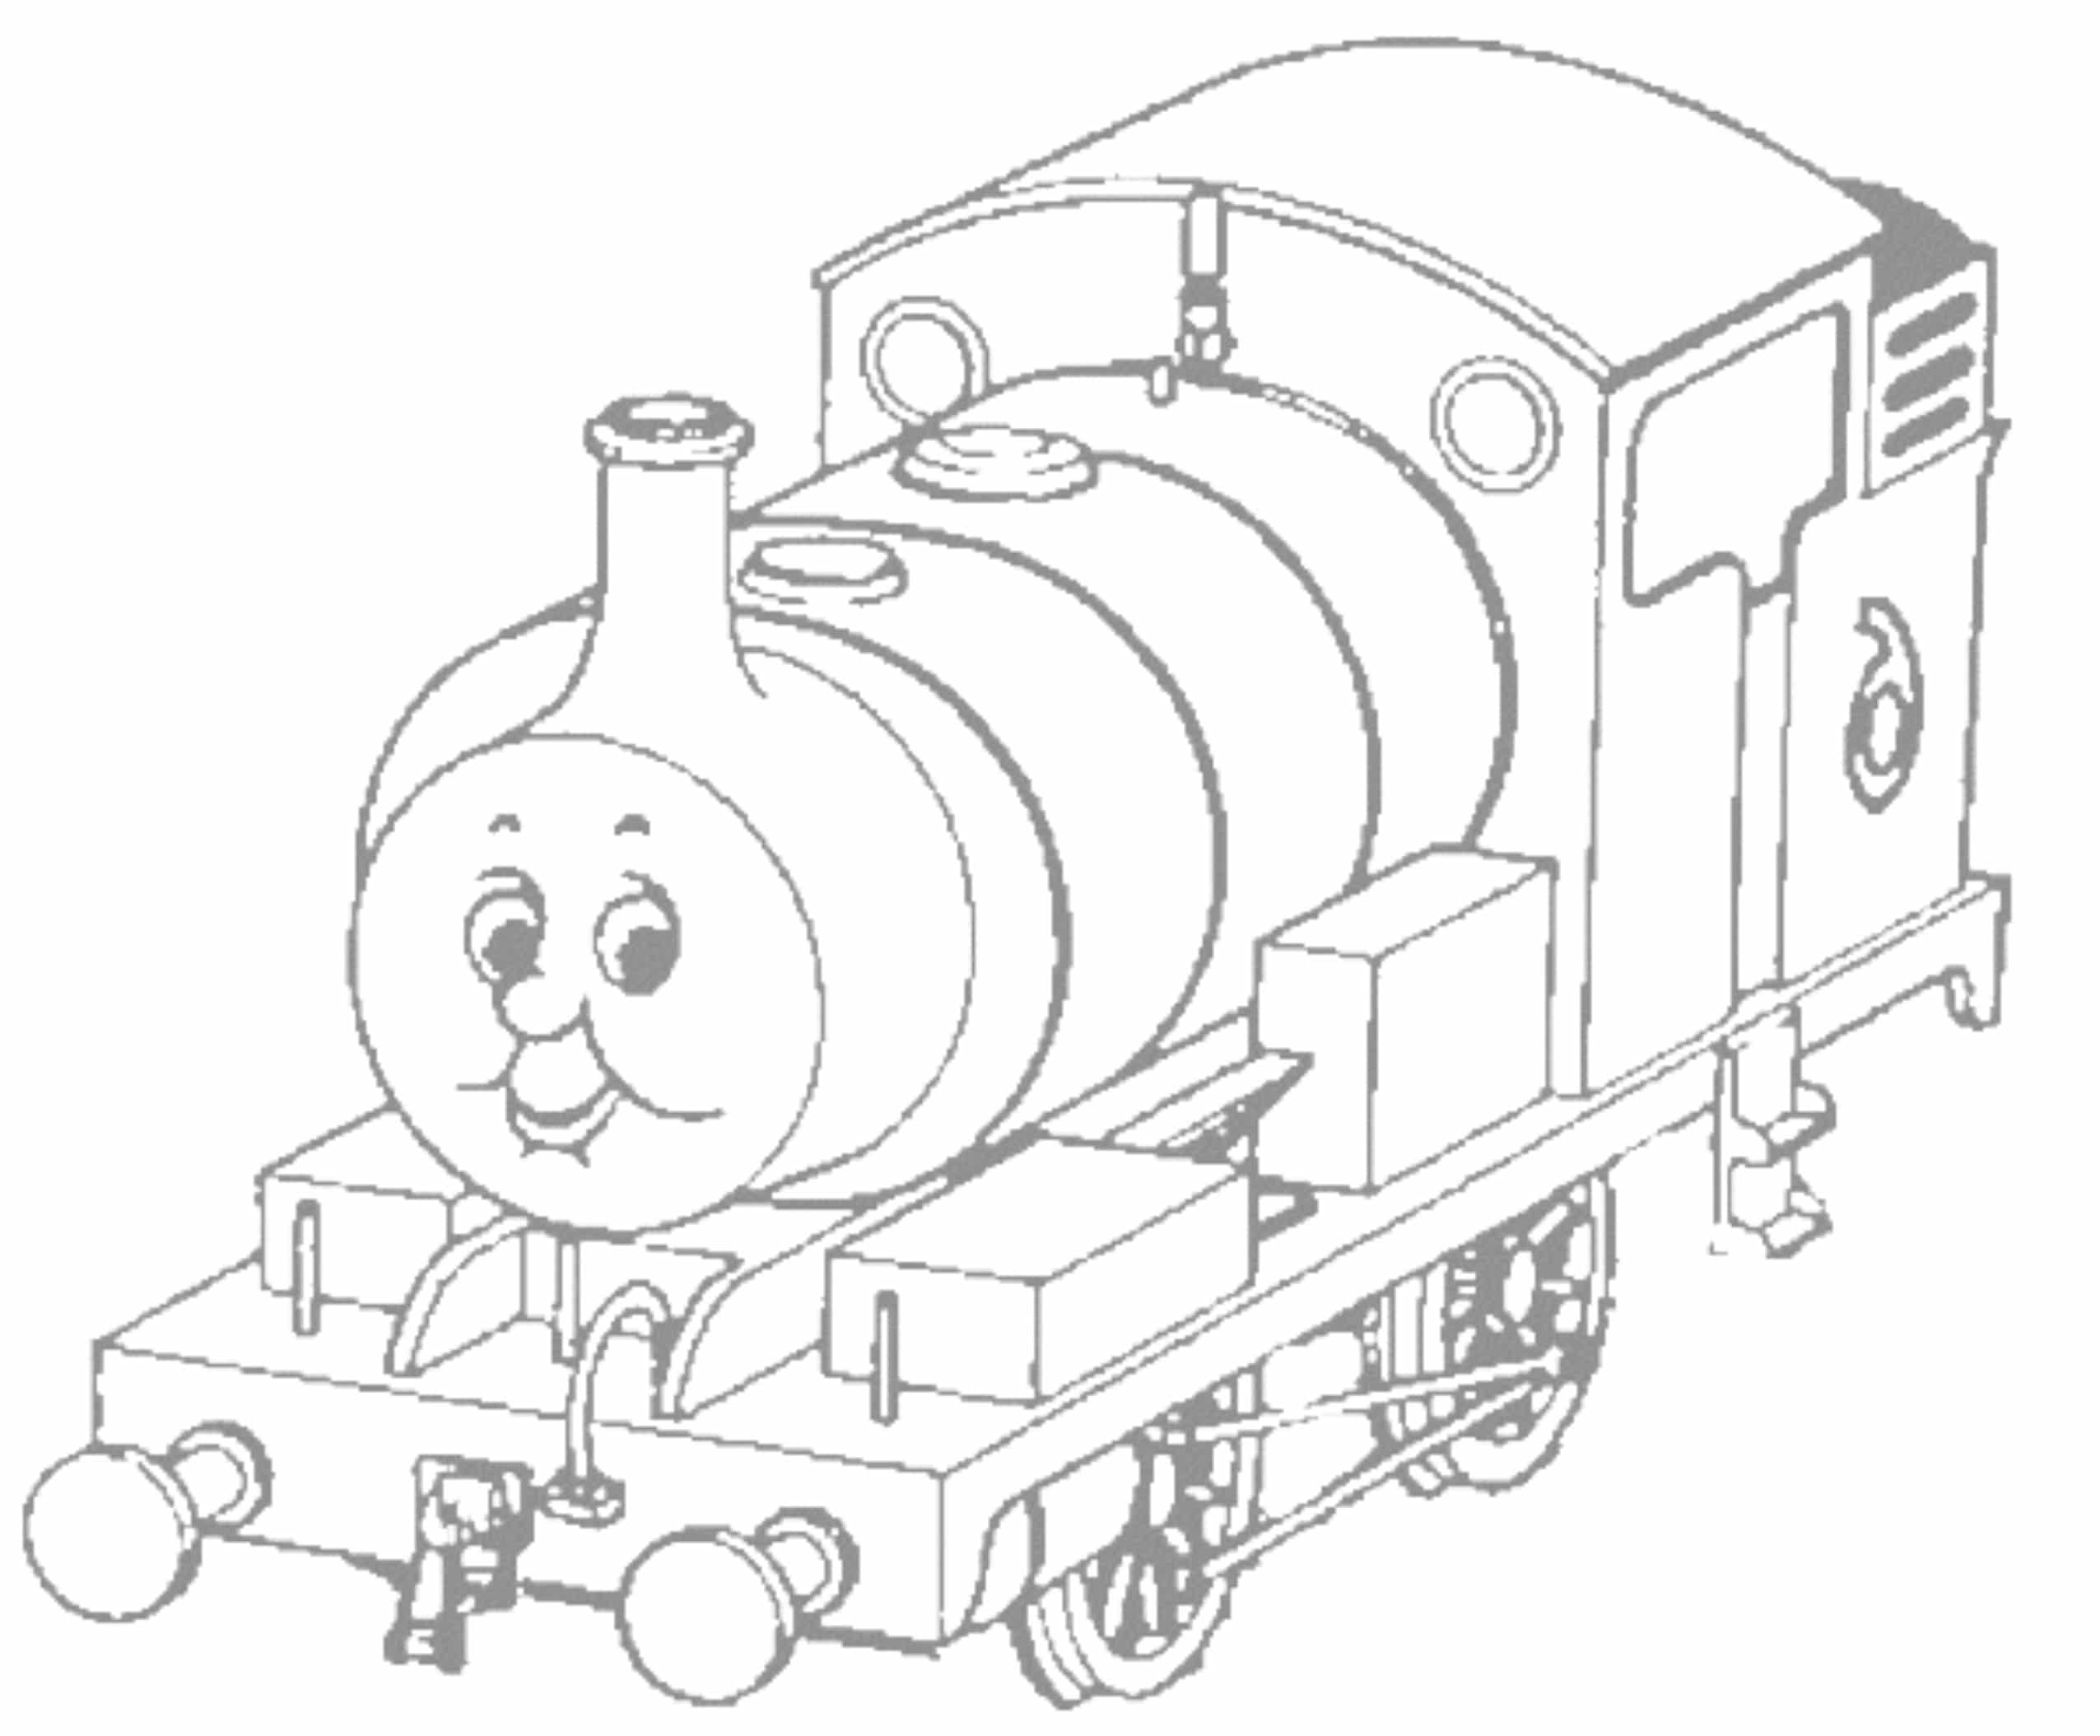 steam engine drawing steam locomotive drawing at getdrawings free download drawing engine steam